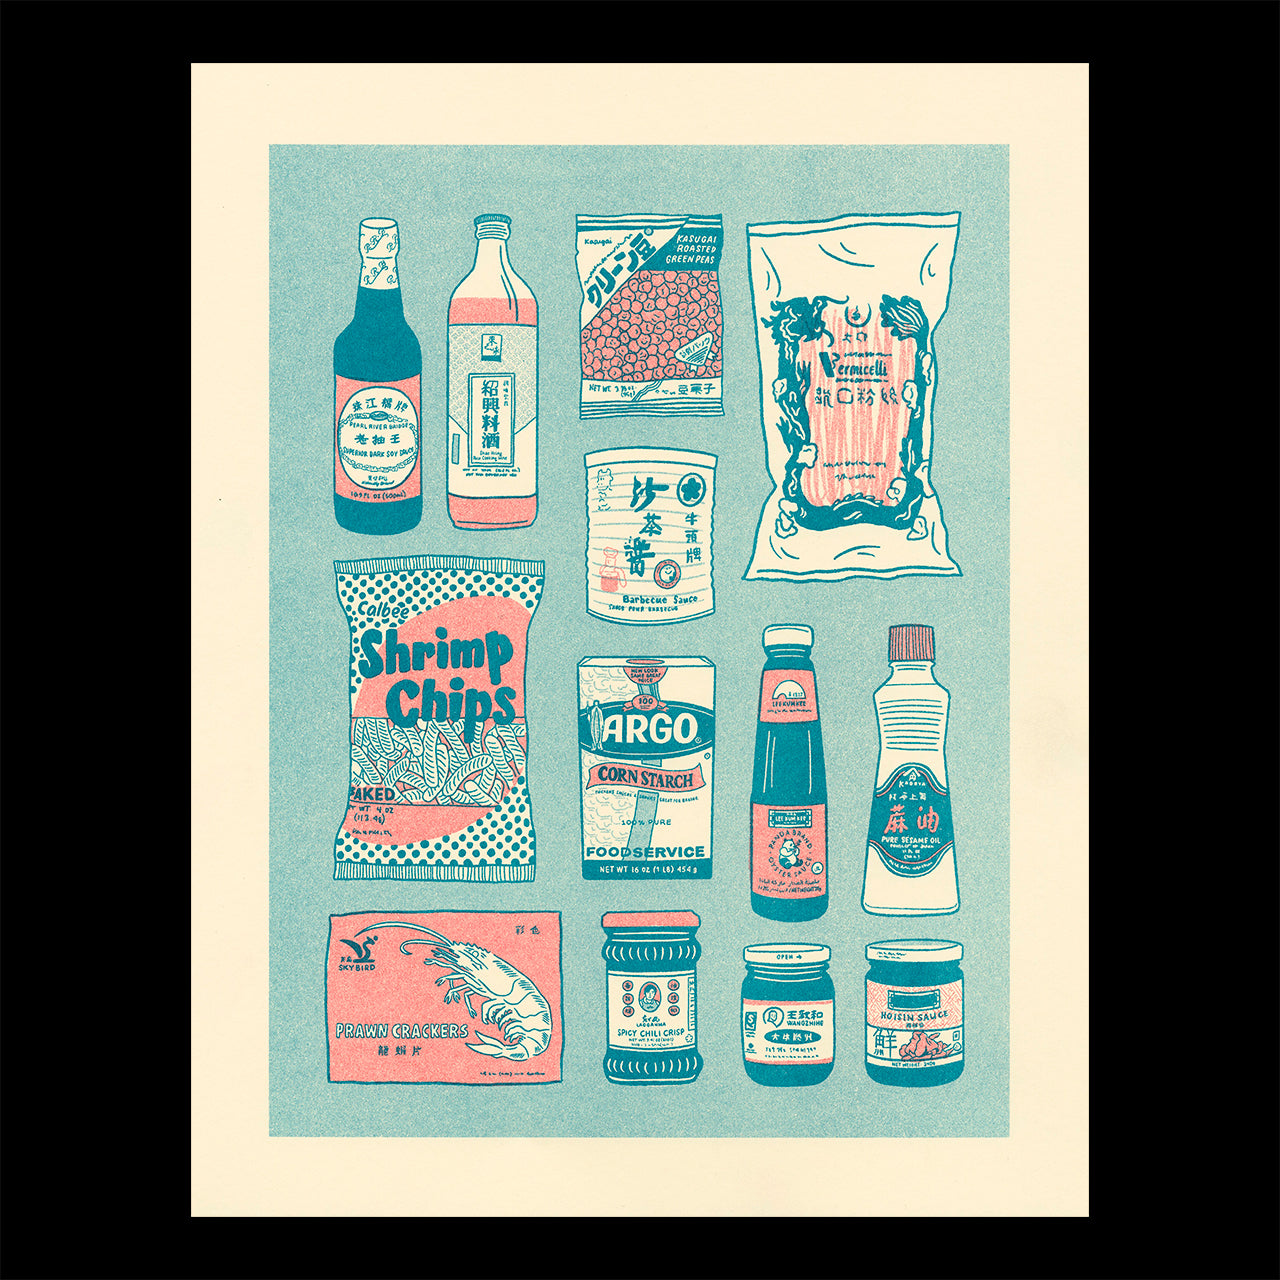 Risograph printed illustration showing common items found in the pantry of a Chinese home